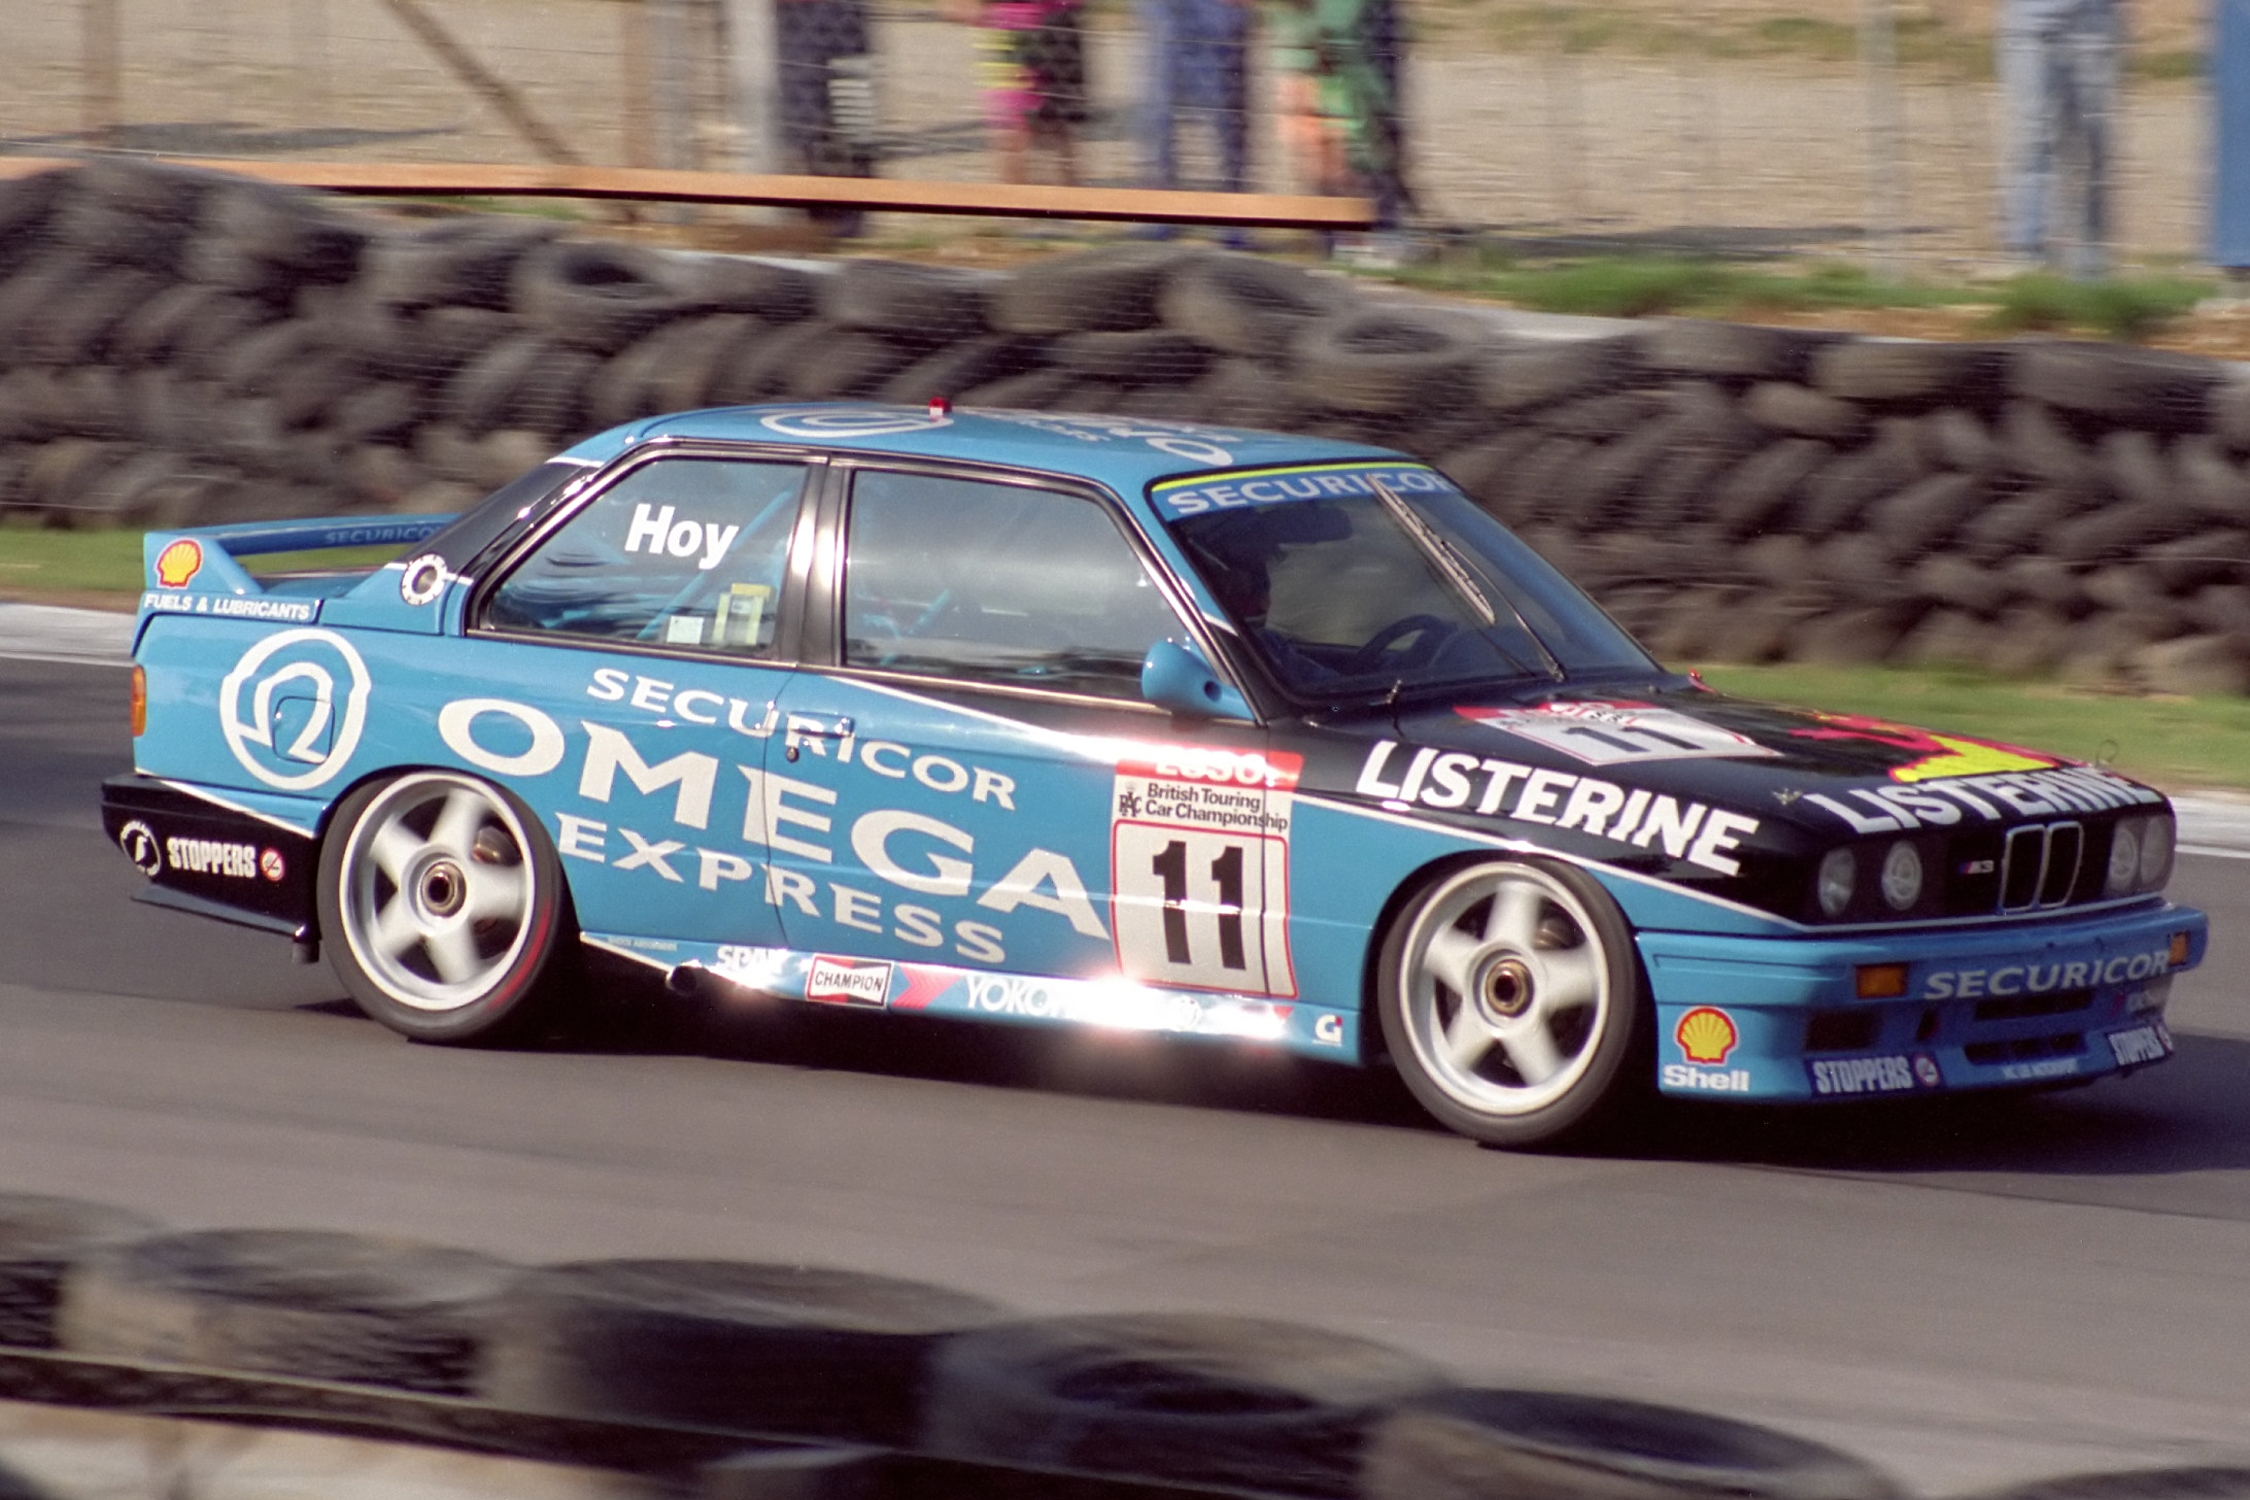 Will Hoy took his BMW M3 to the 1991 title. Image Credit: BTCCCrazy.co.uk